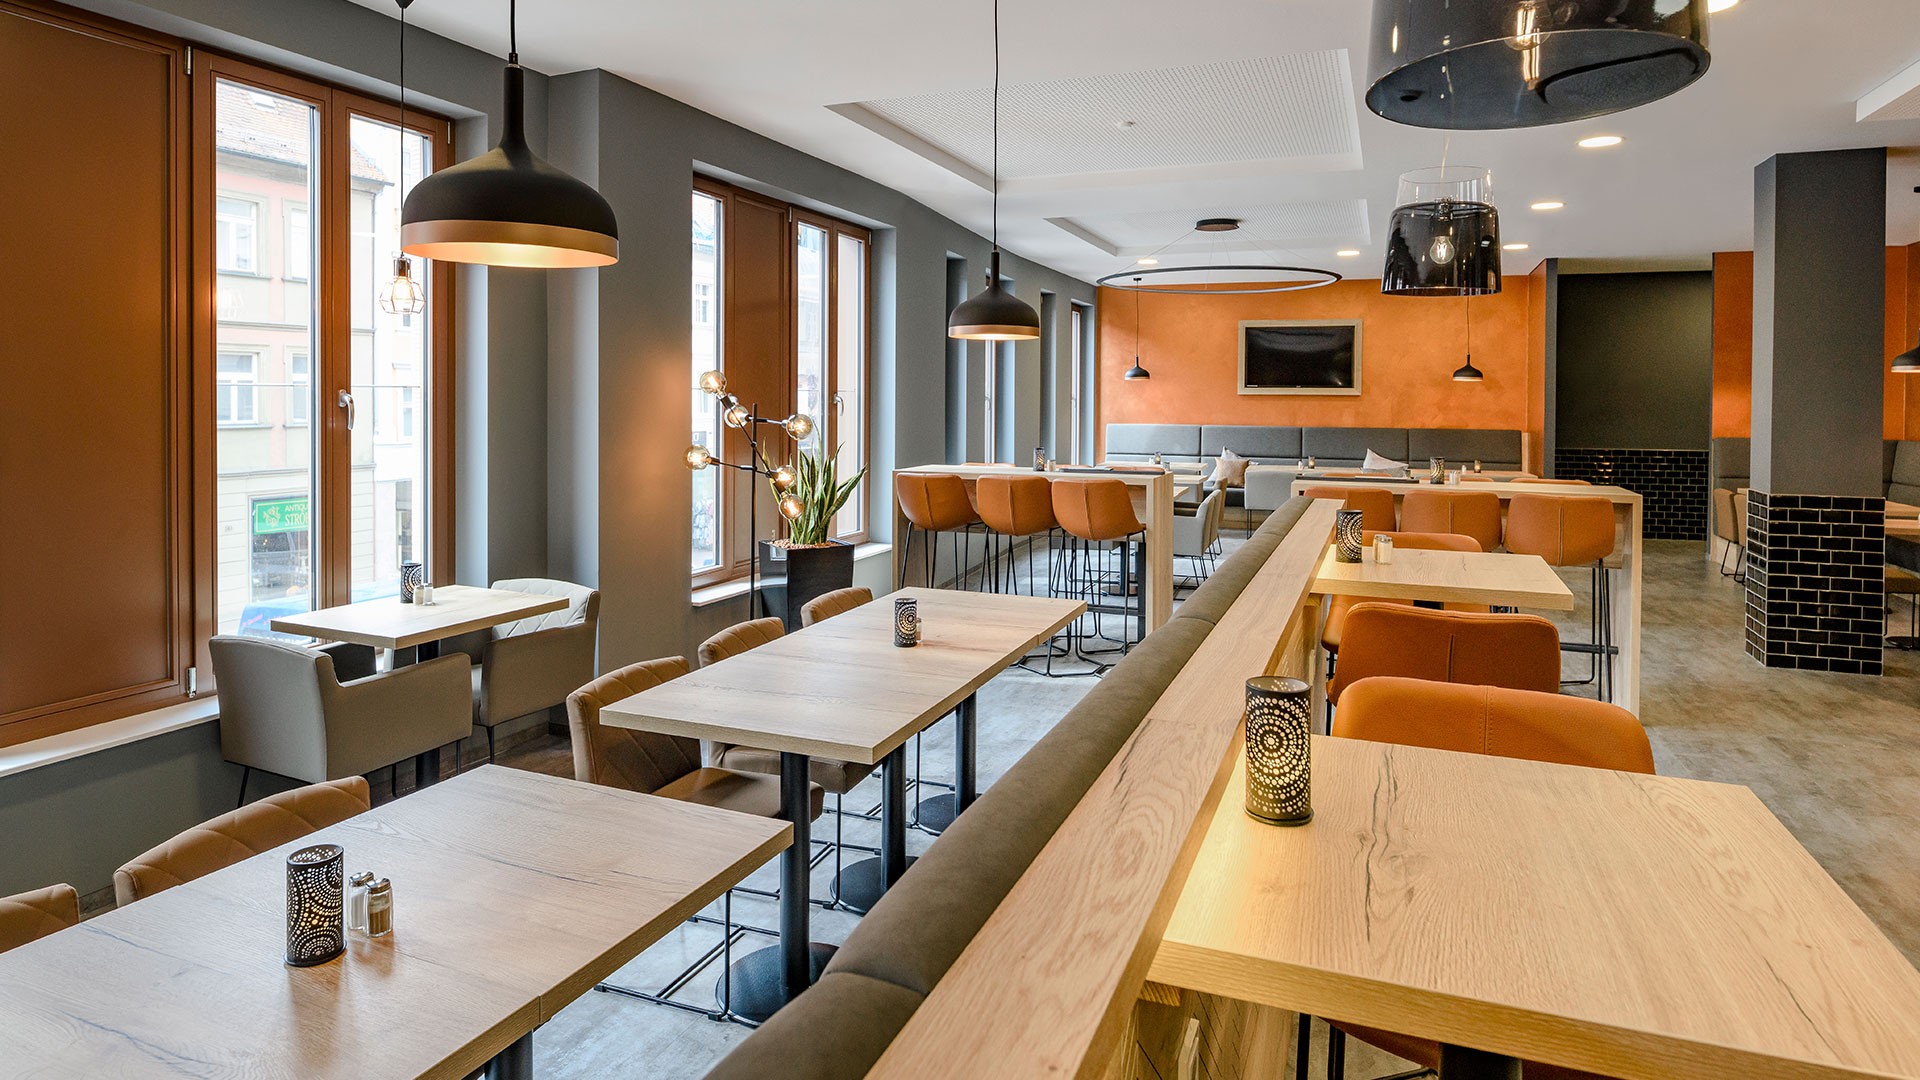 Photo du restaurant - 02 - ibis Styles Bamberg